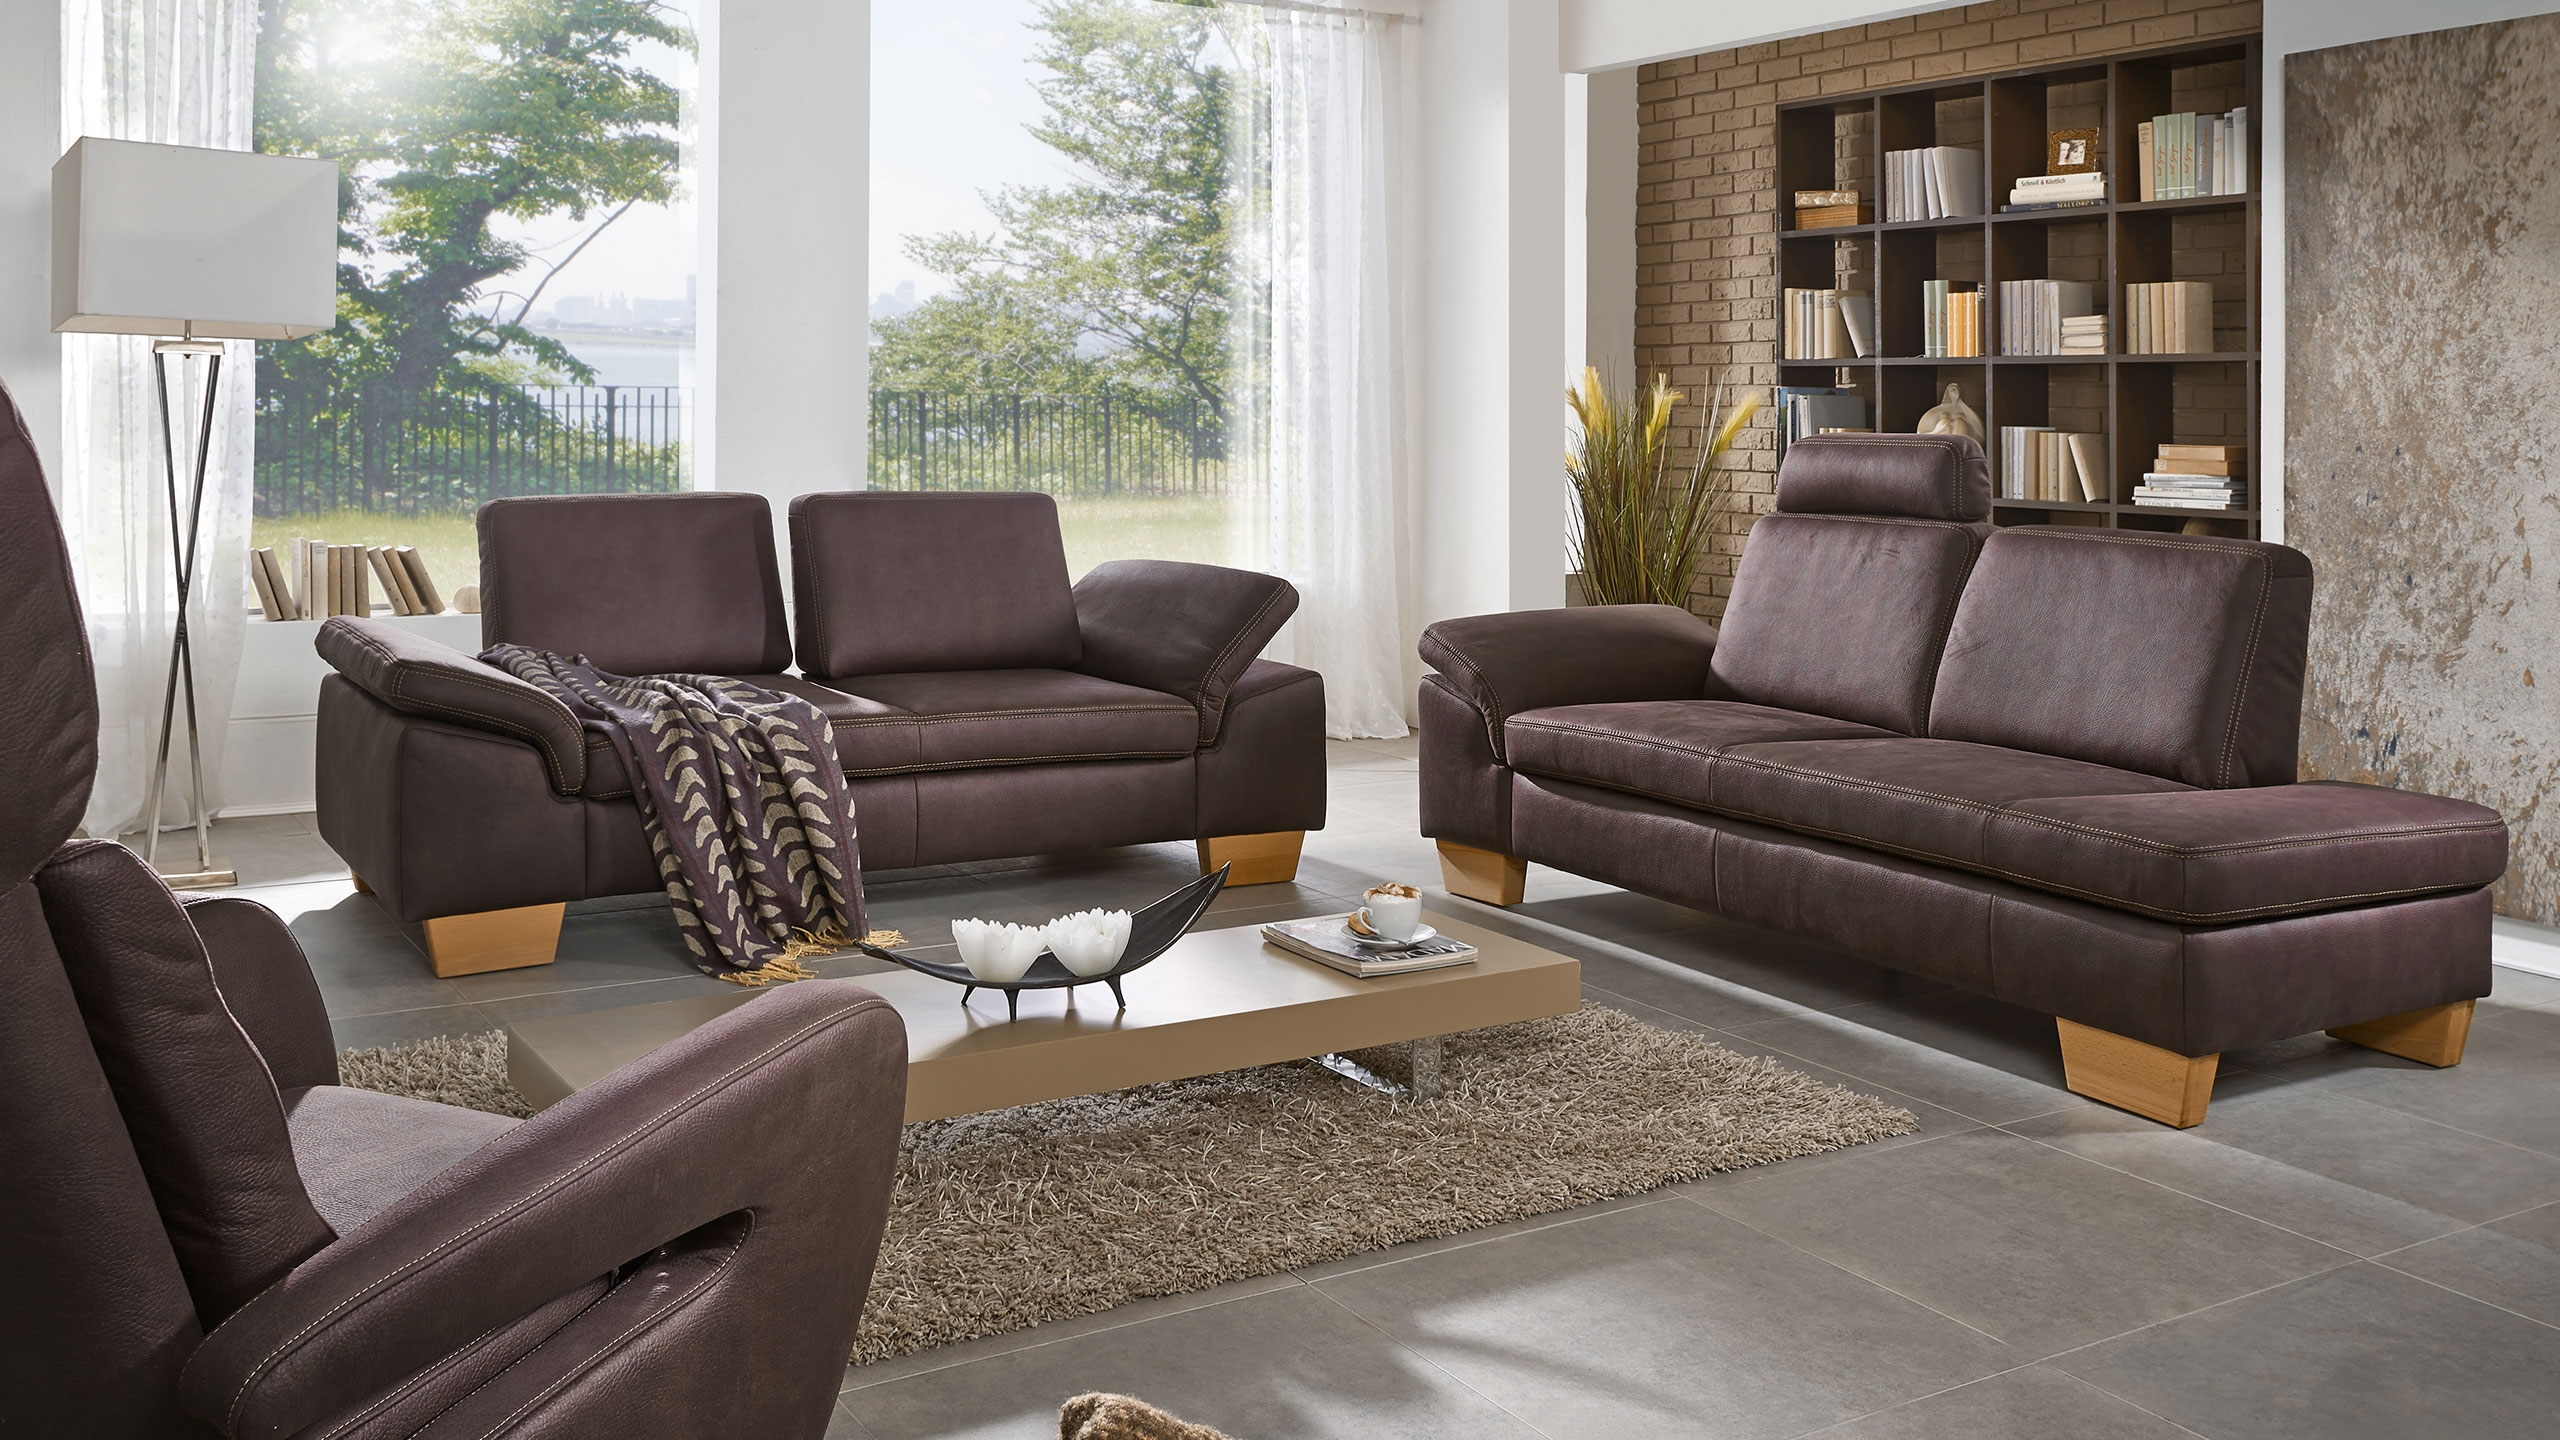 Punto Sofa Garnitur Braun Sofa Garnituren Sortiment Multipolster